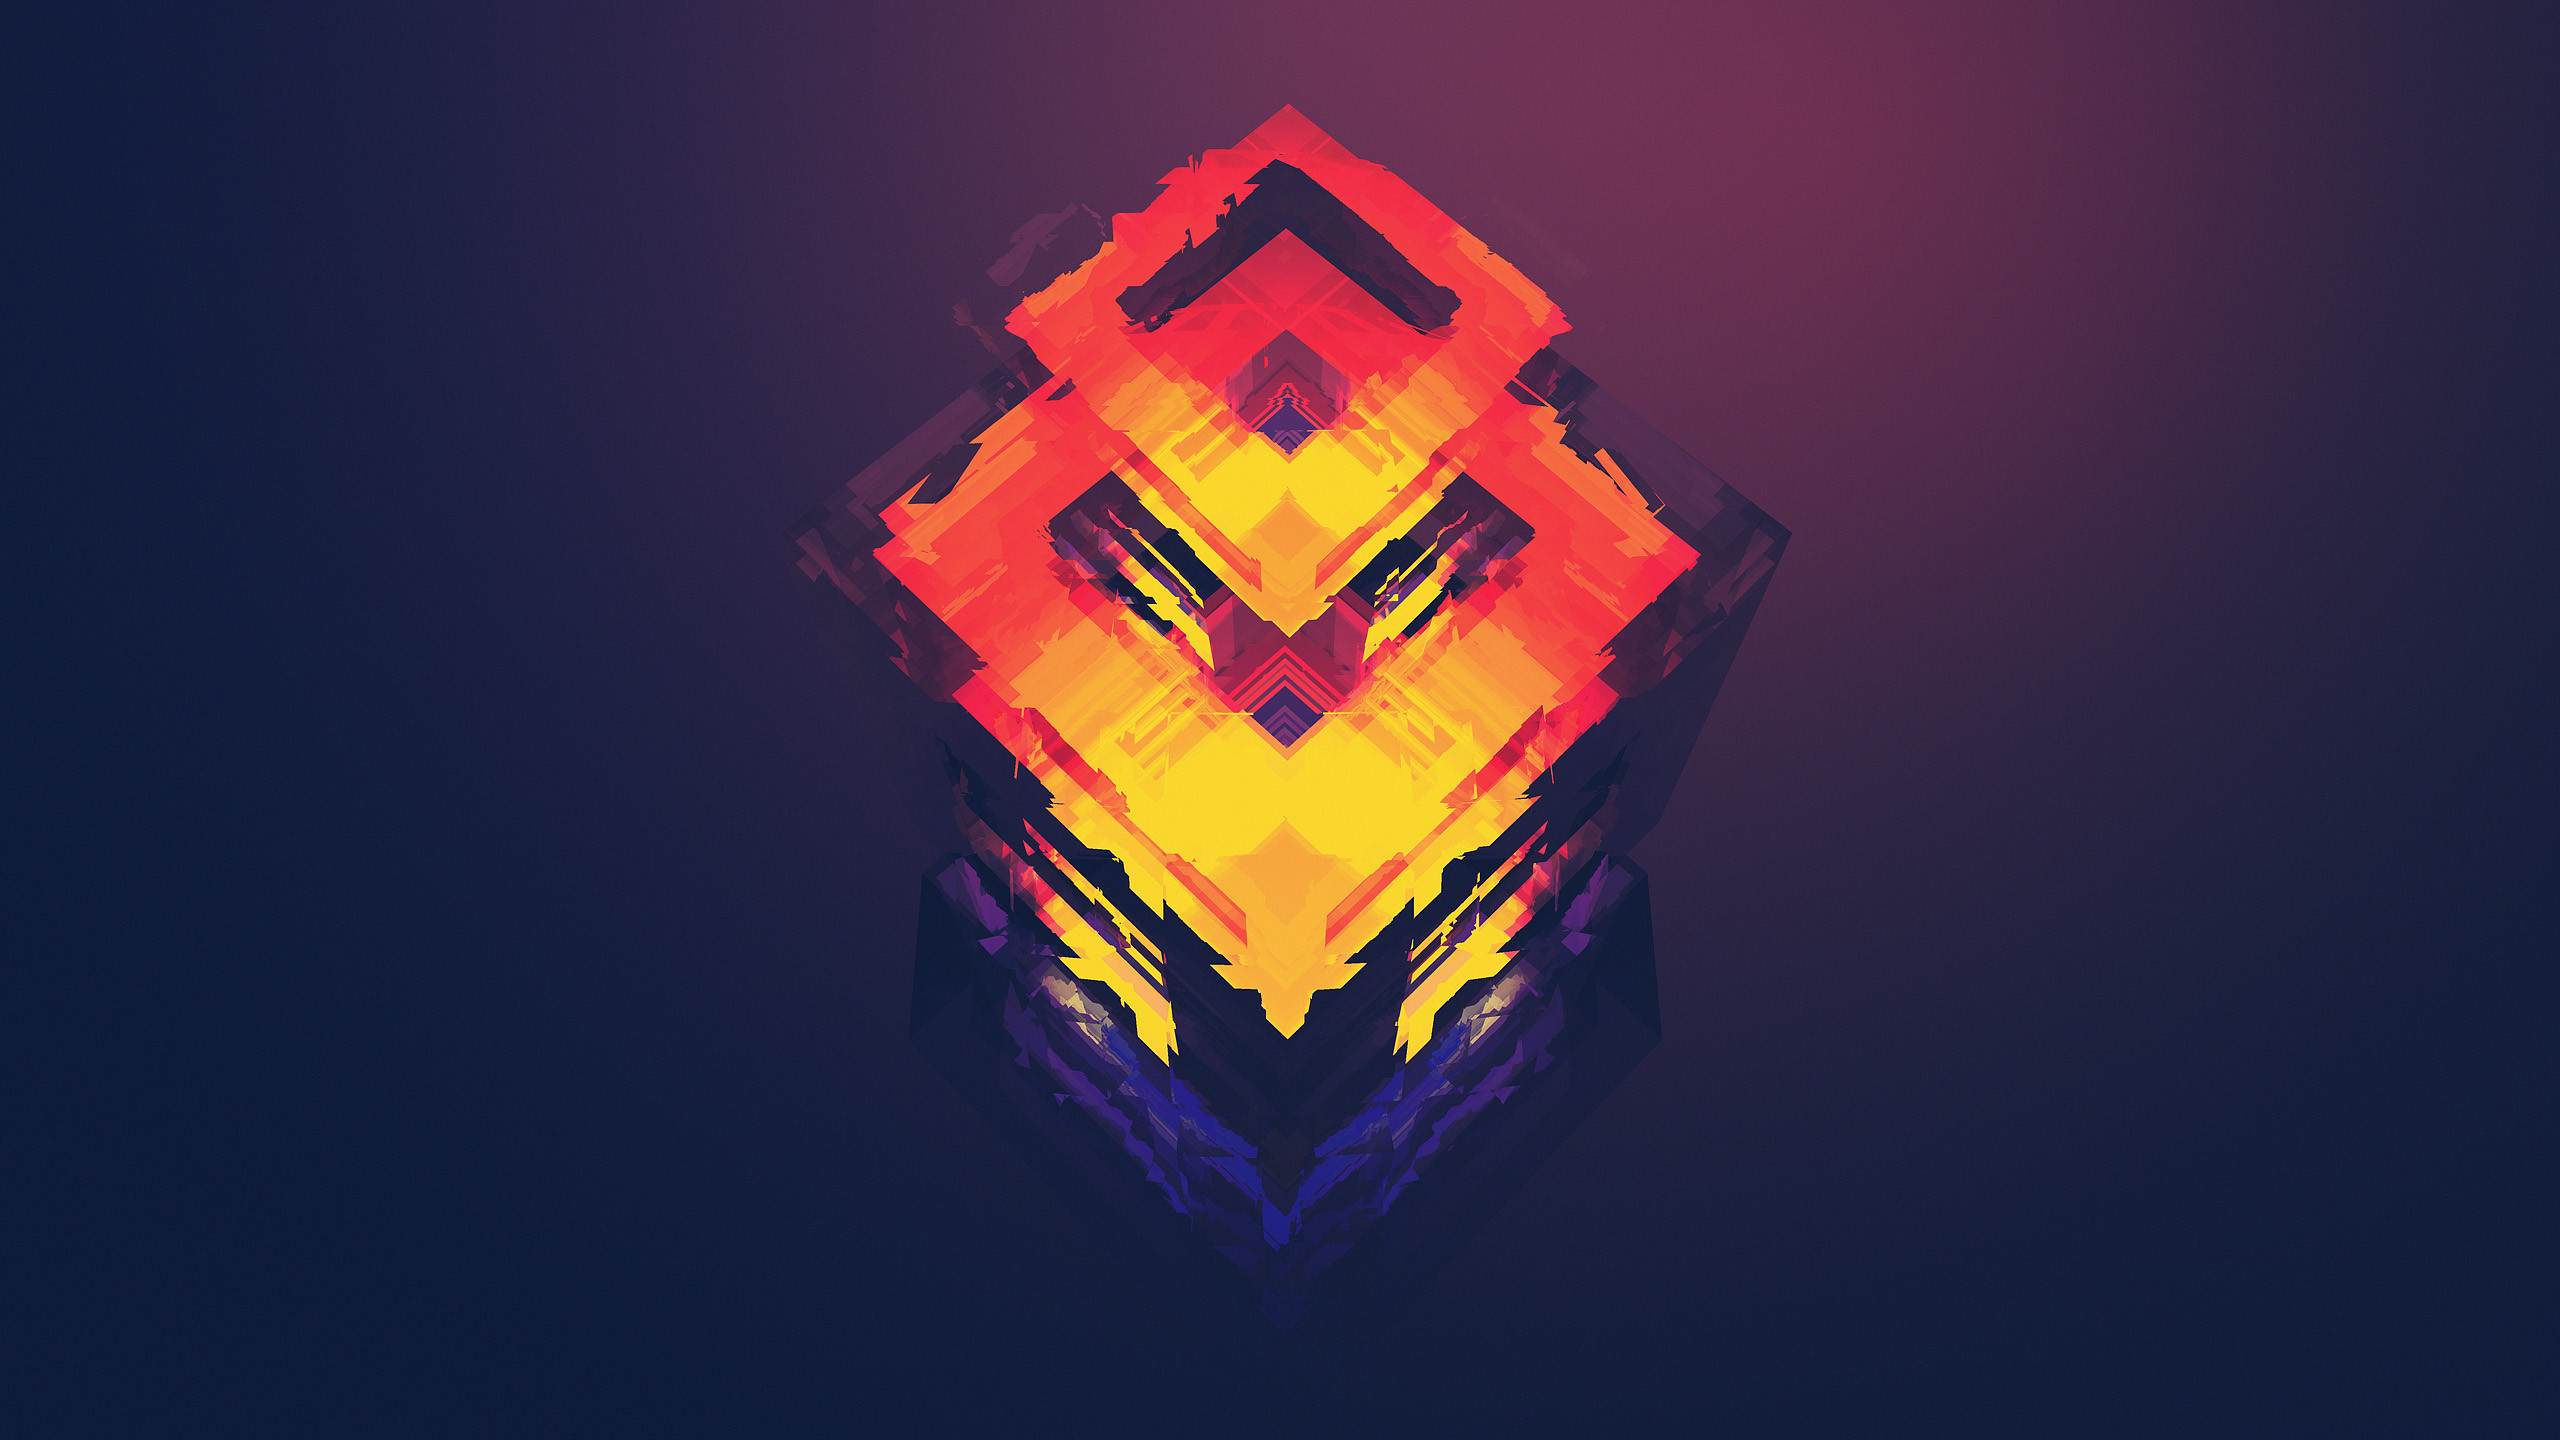 wallpaper, colorful shapes, colors, design by Justin Maller FACET.